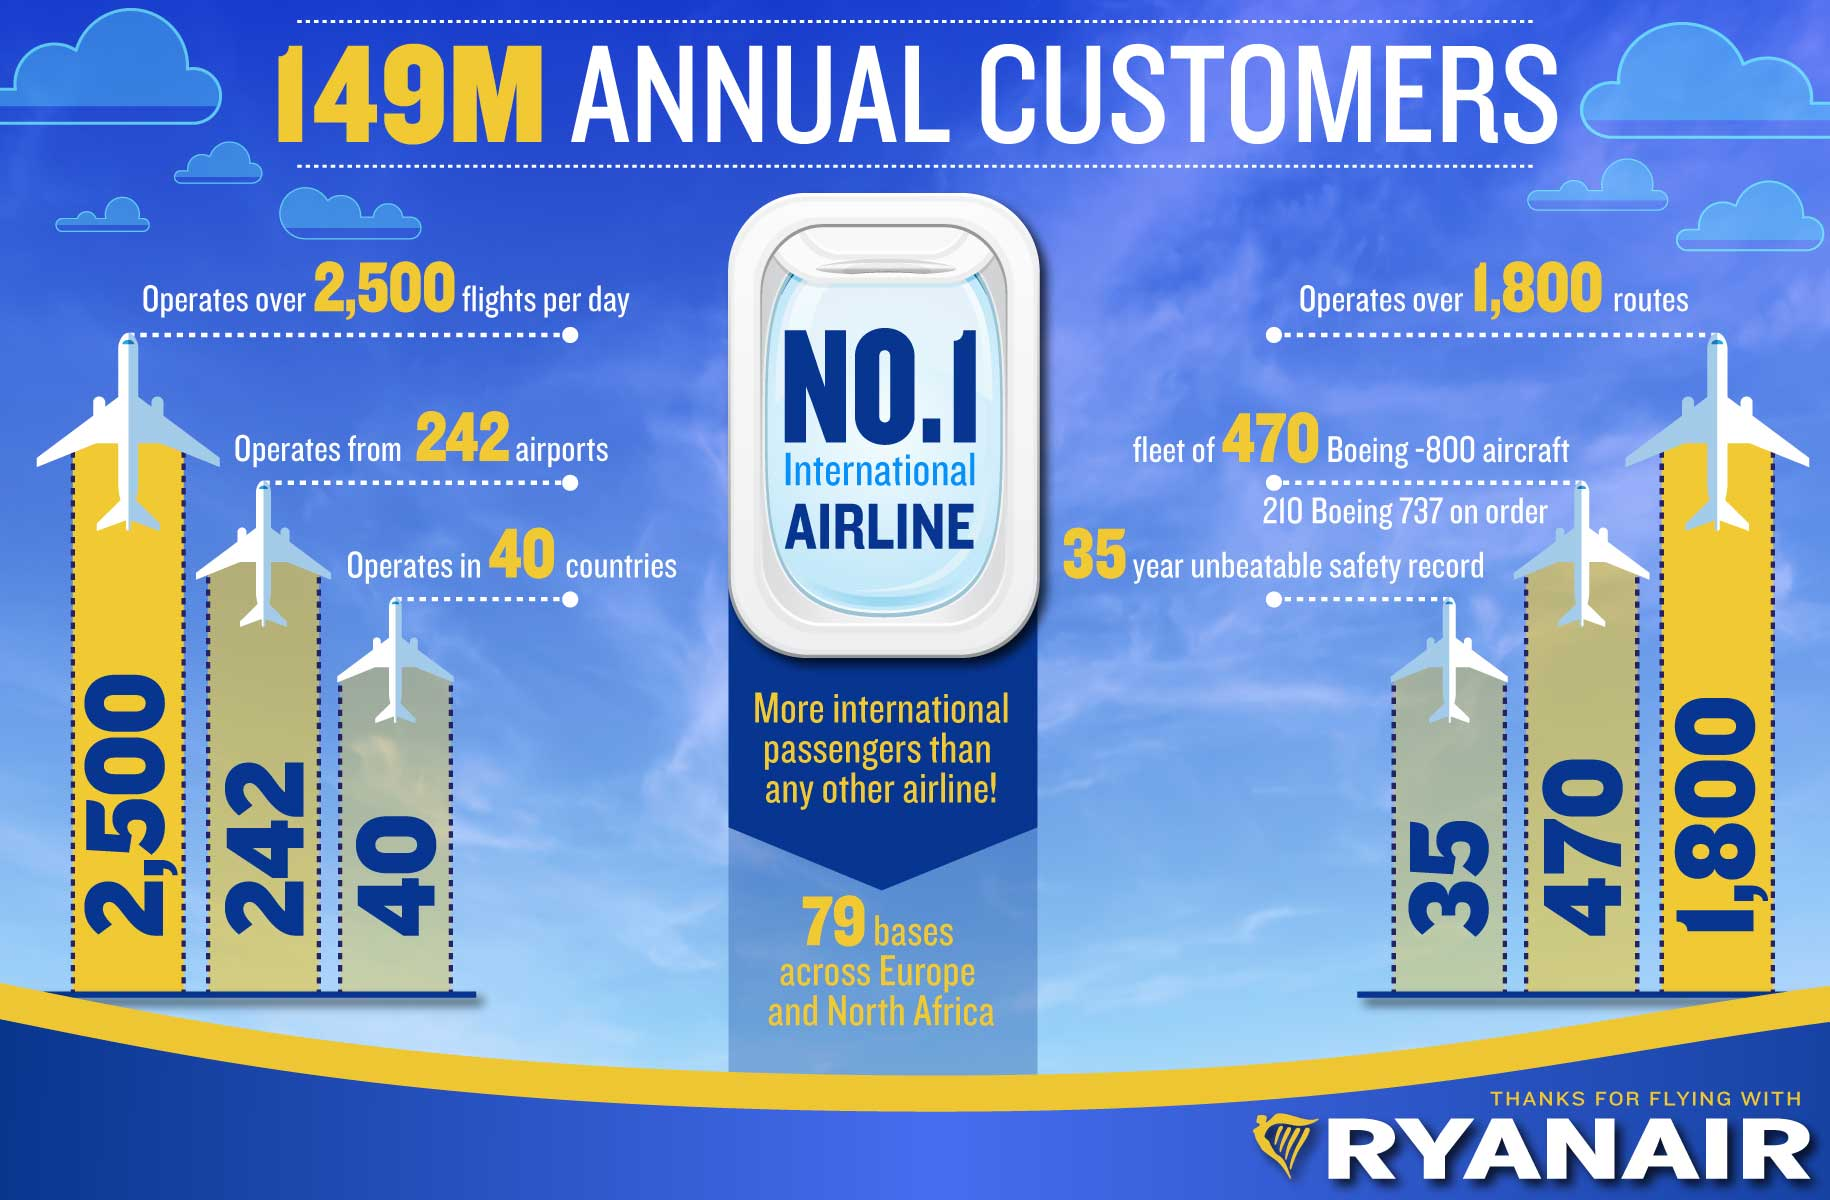 149m annual customers - infographic